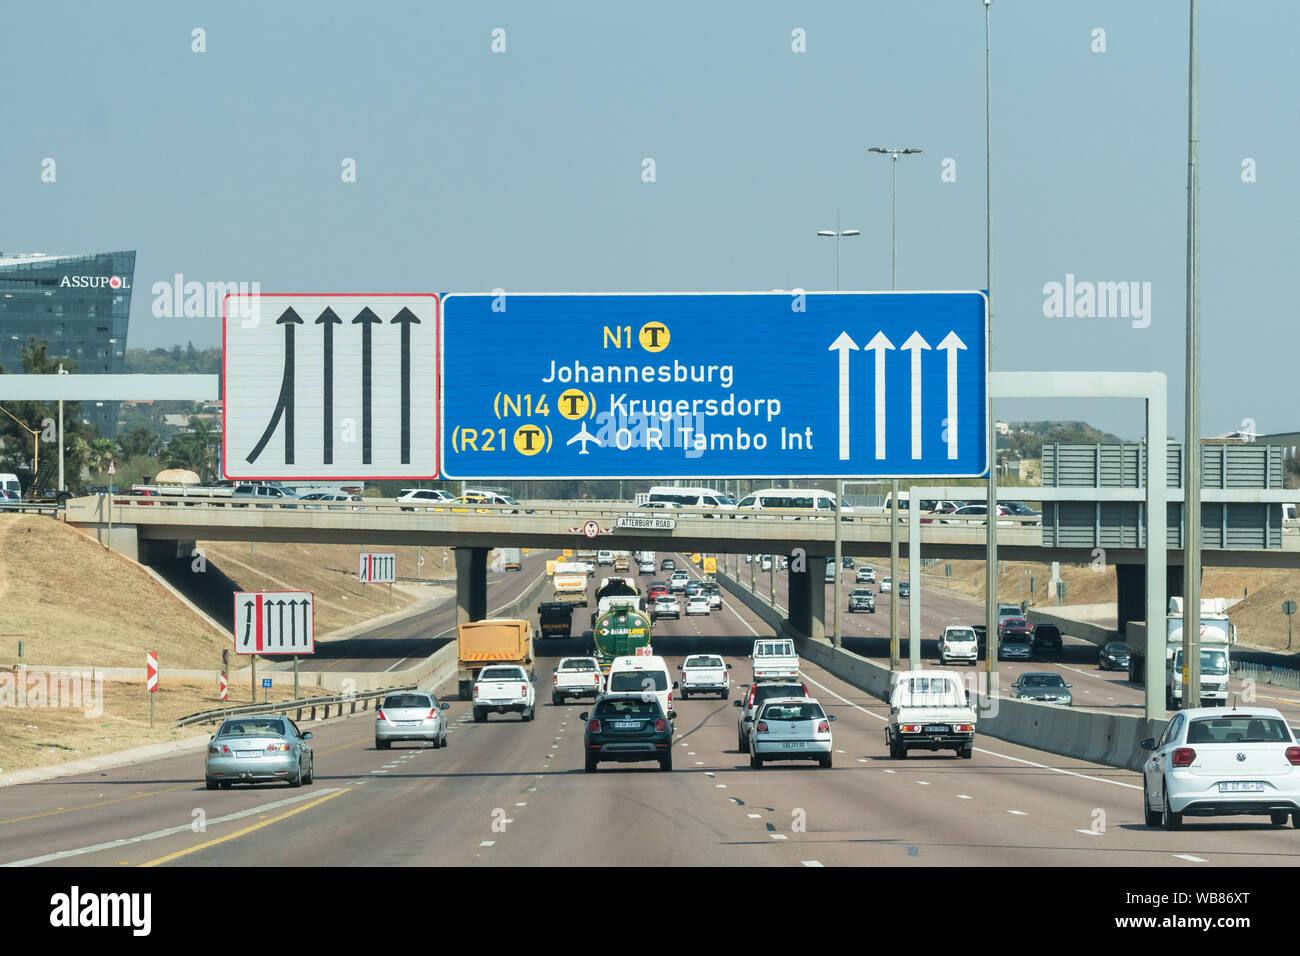 cars and vehicles speed along the N1 highway toll road with a blue sign board and directions to the city of Johannesburg,Gauteng, South Africa Stock Photo